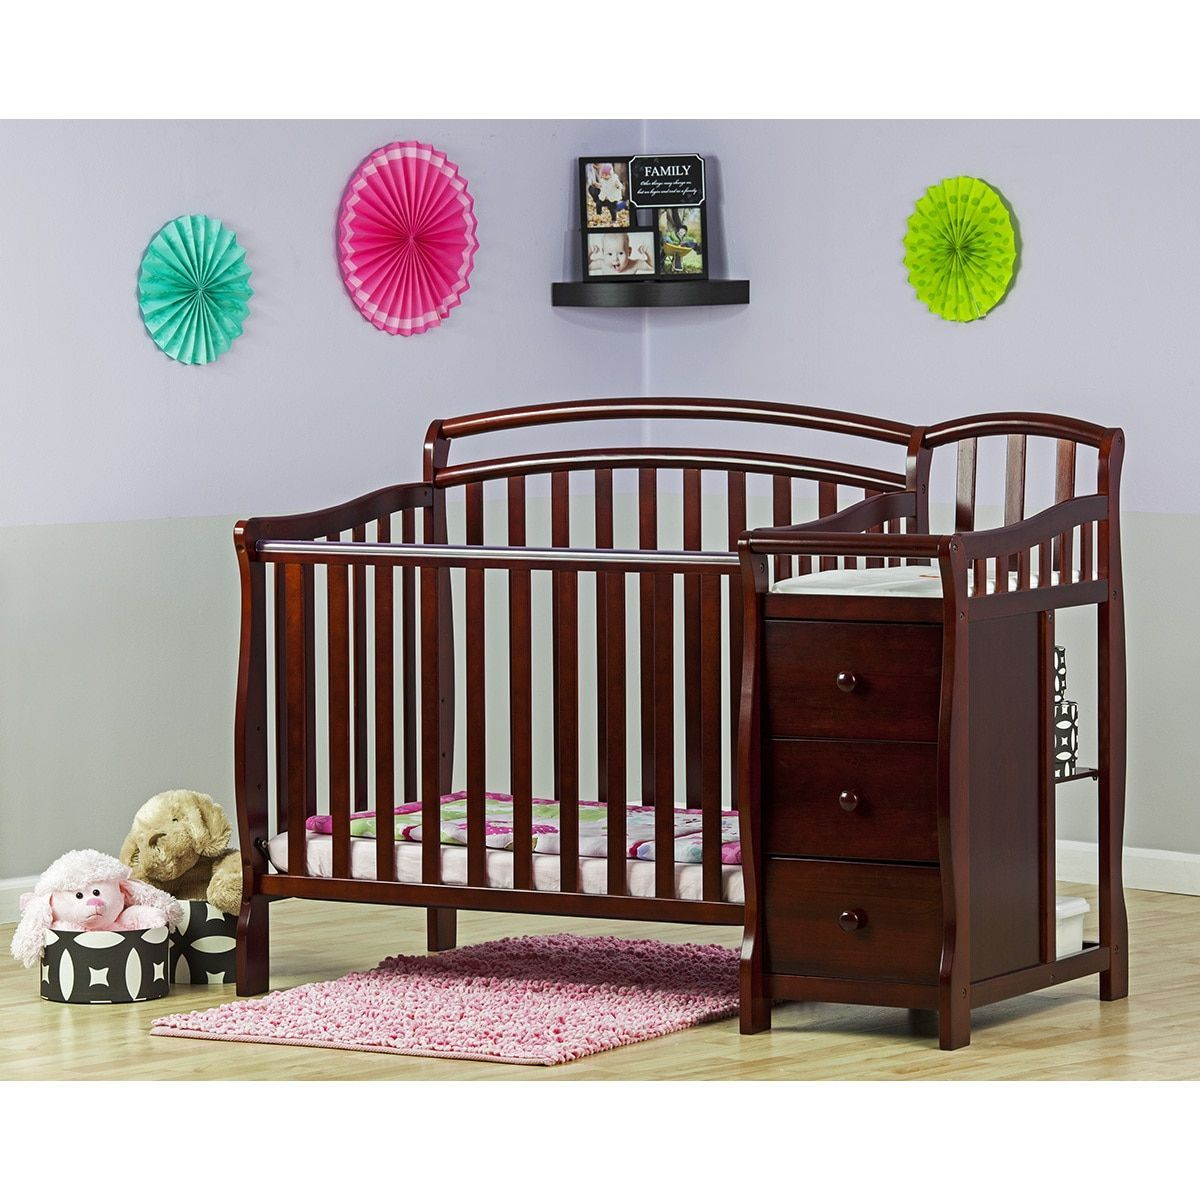 Dream On Me Casco 4 In 1 Mini Crib And Changing Table Mini Crib Cribs Crib With Changing Table